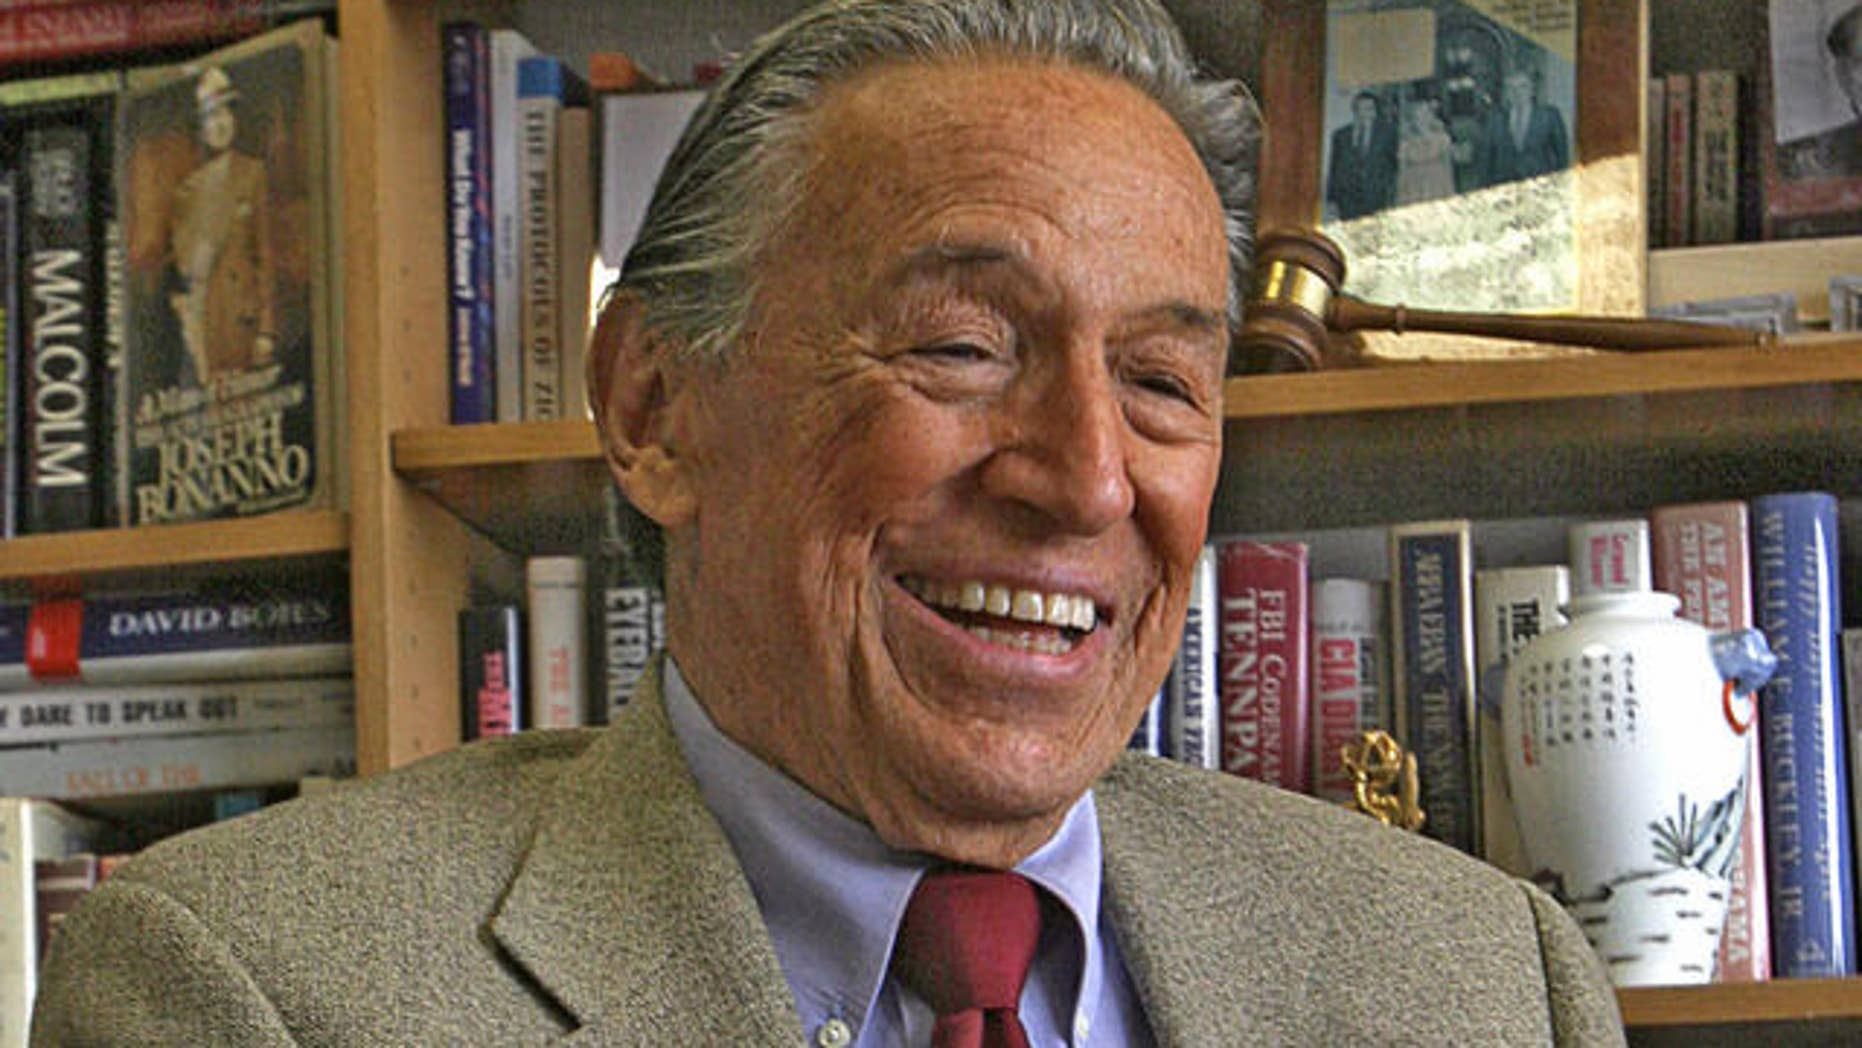 Mike Wallace, 60 Minutes correspondent, laughs during an interview at his office in New York, Monday May 8, 2006.